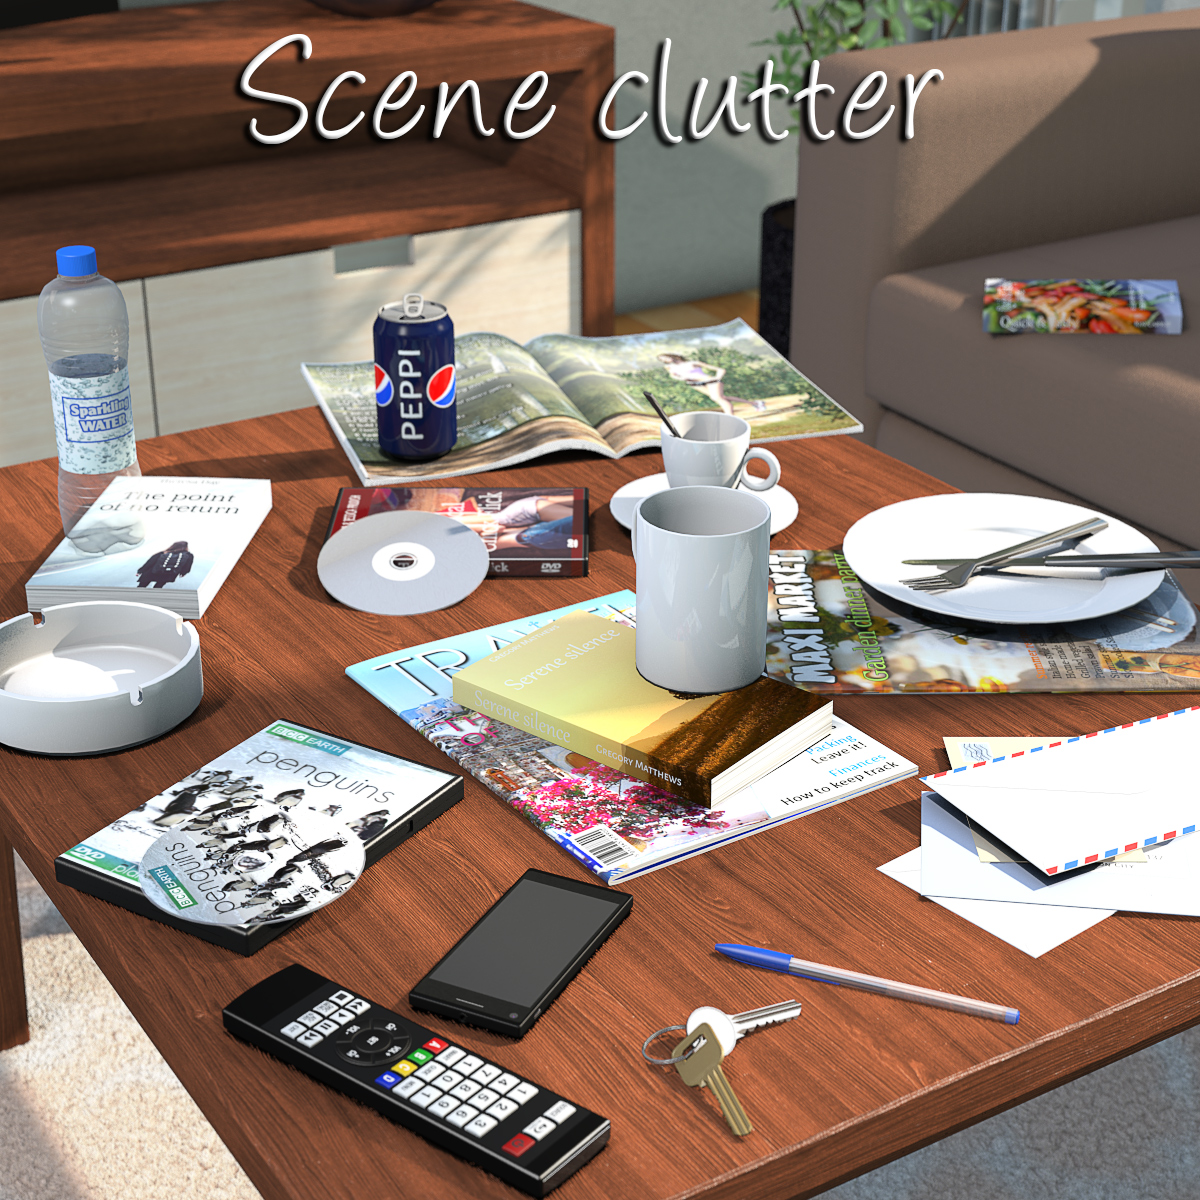 Everyday items, Scene clutter by 2nd_World